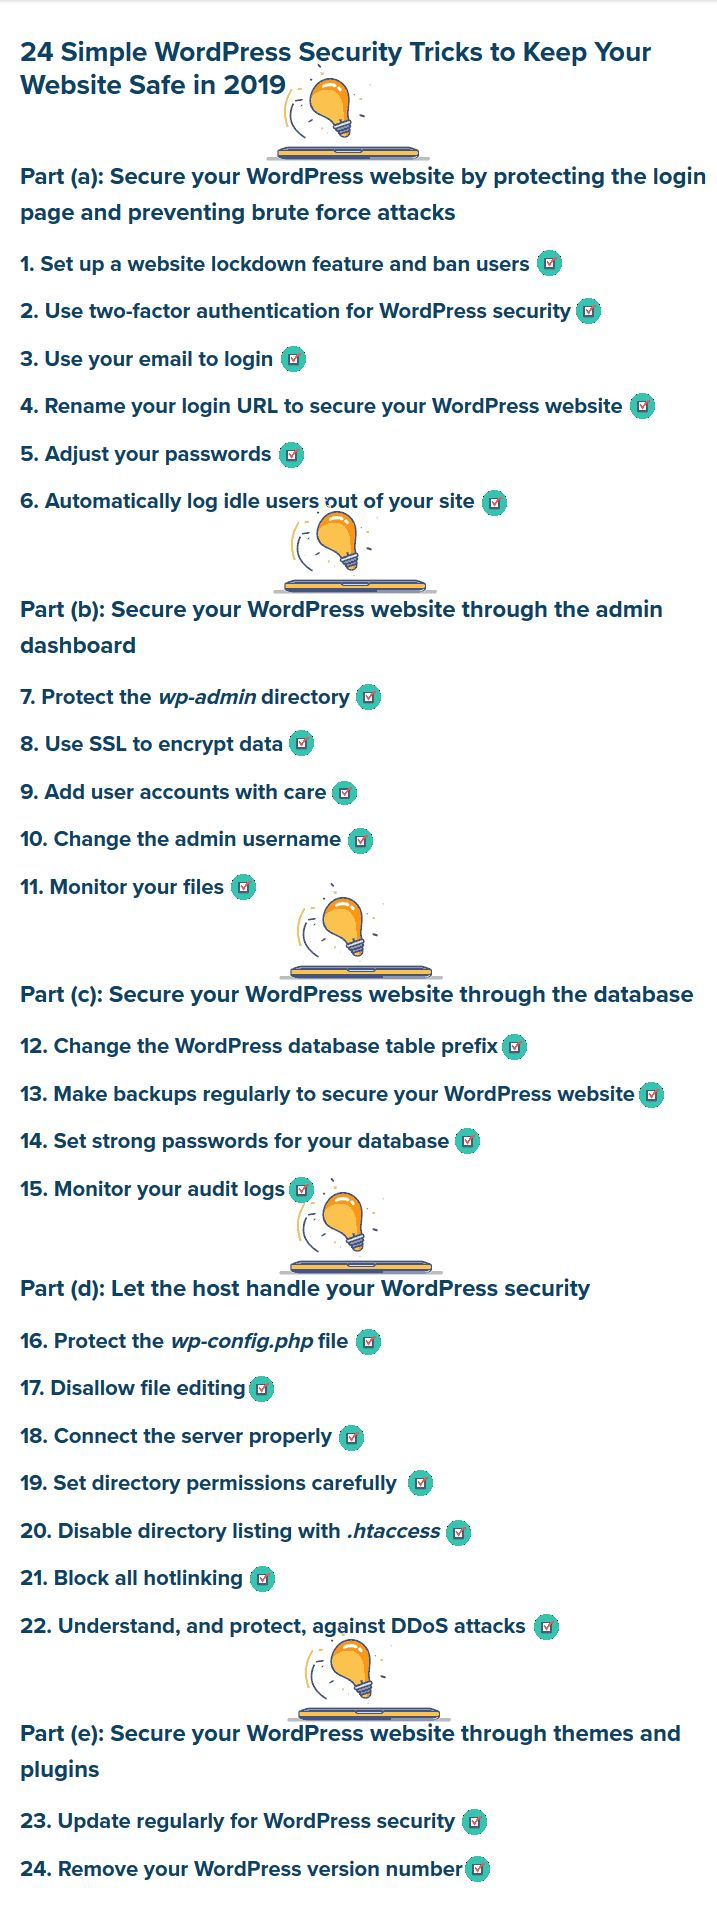 Simple WordPress Security Tricks to Keep Your Website Safe_secure-your-wordpress-website